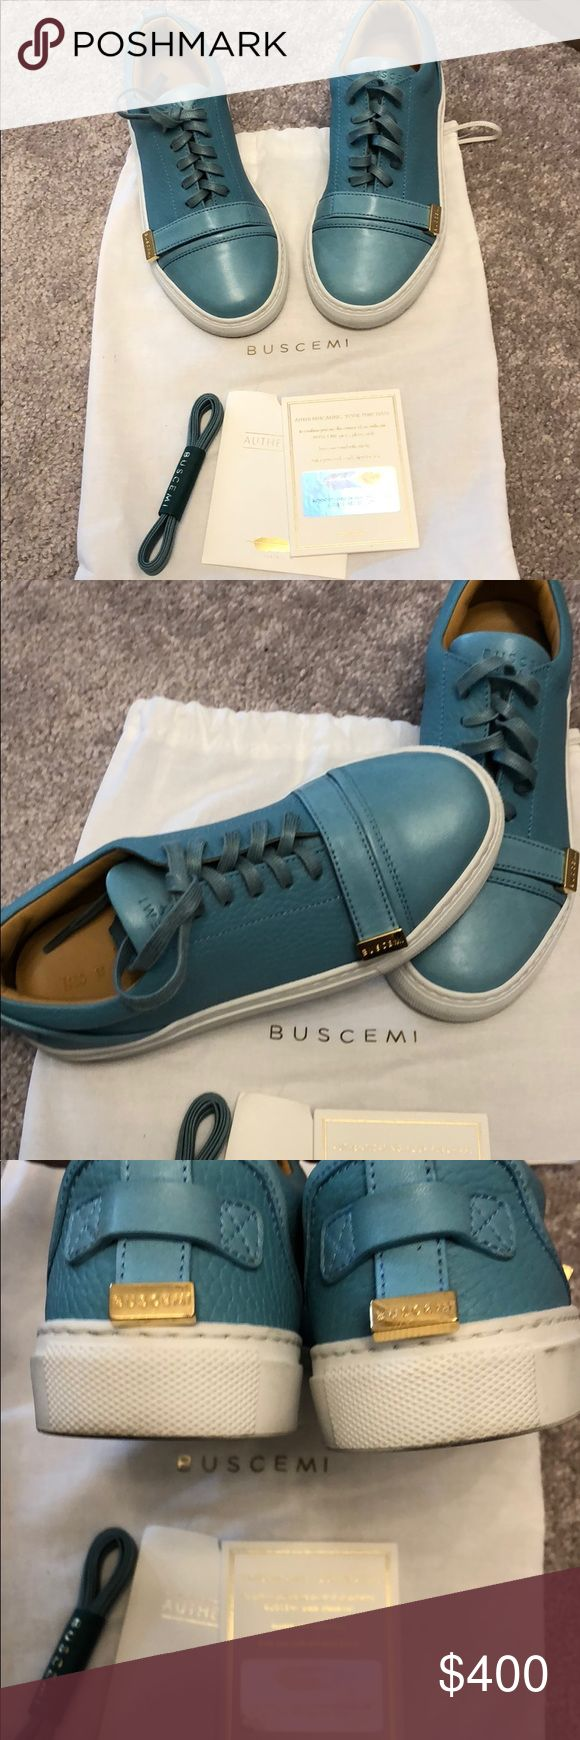 Kids baby blue Buscemi Worn 2 times. No box but I do have dust bag. Bought in Soho nyc Buscemi Shoes Sneakers